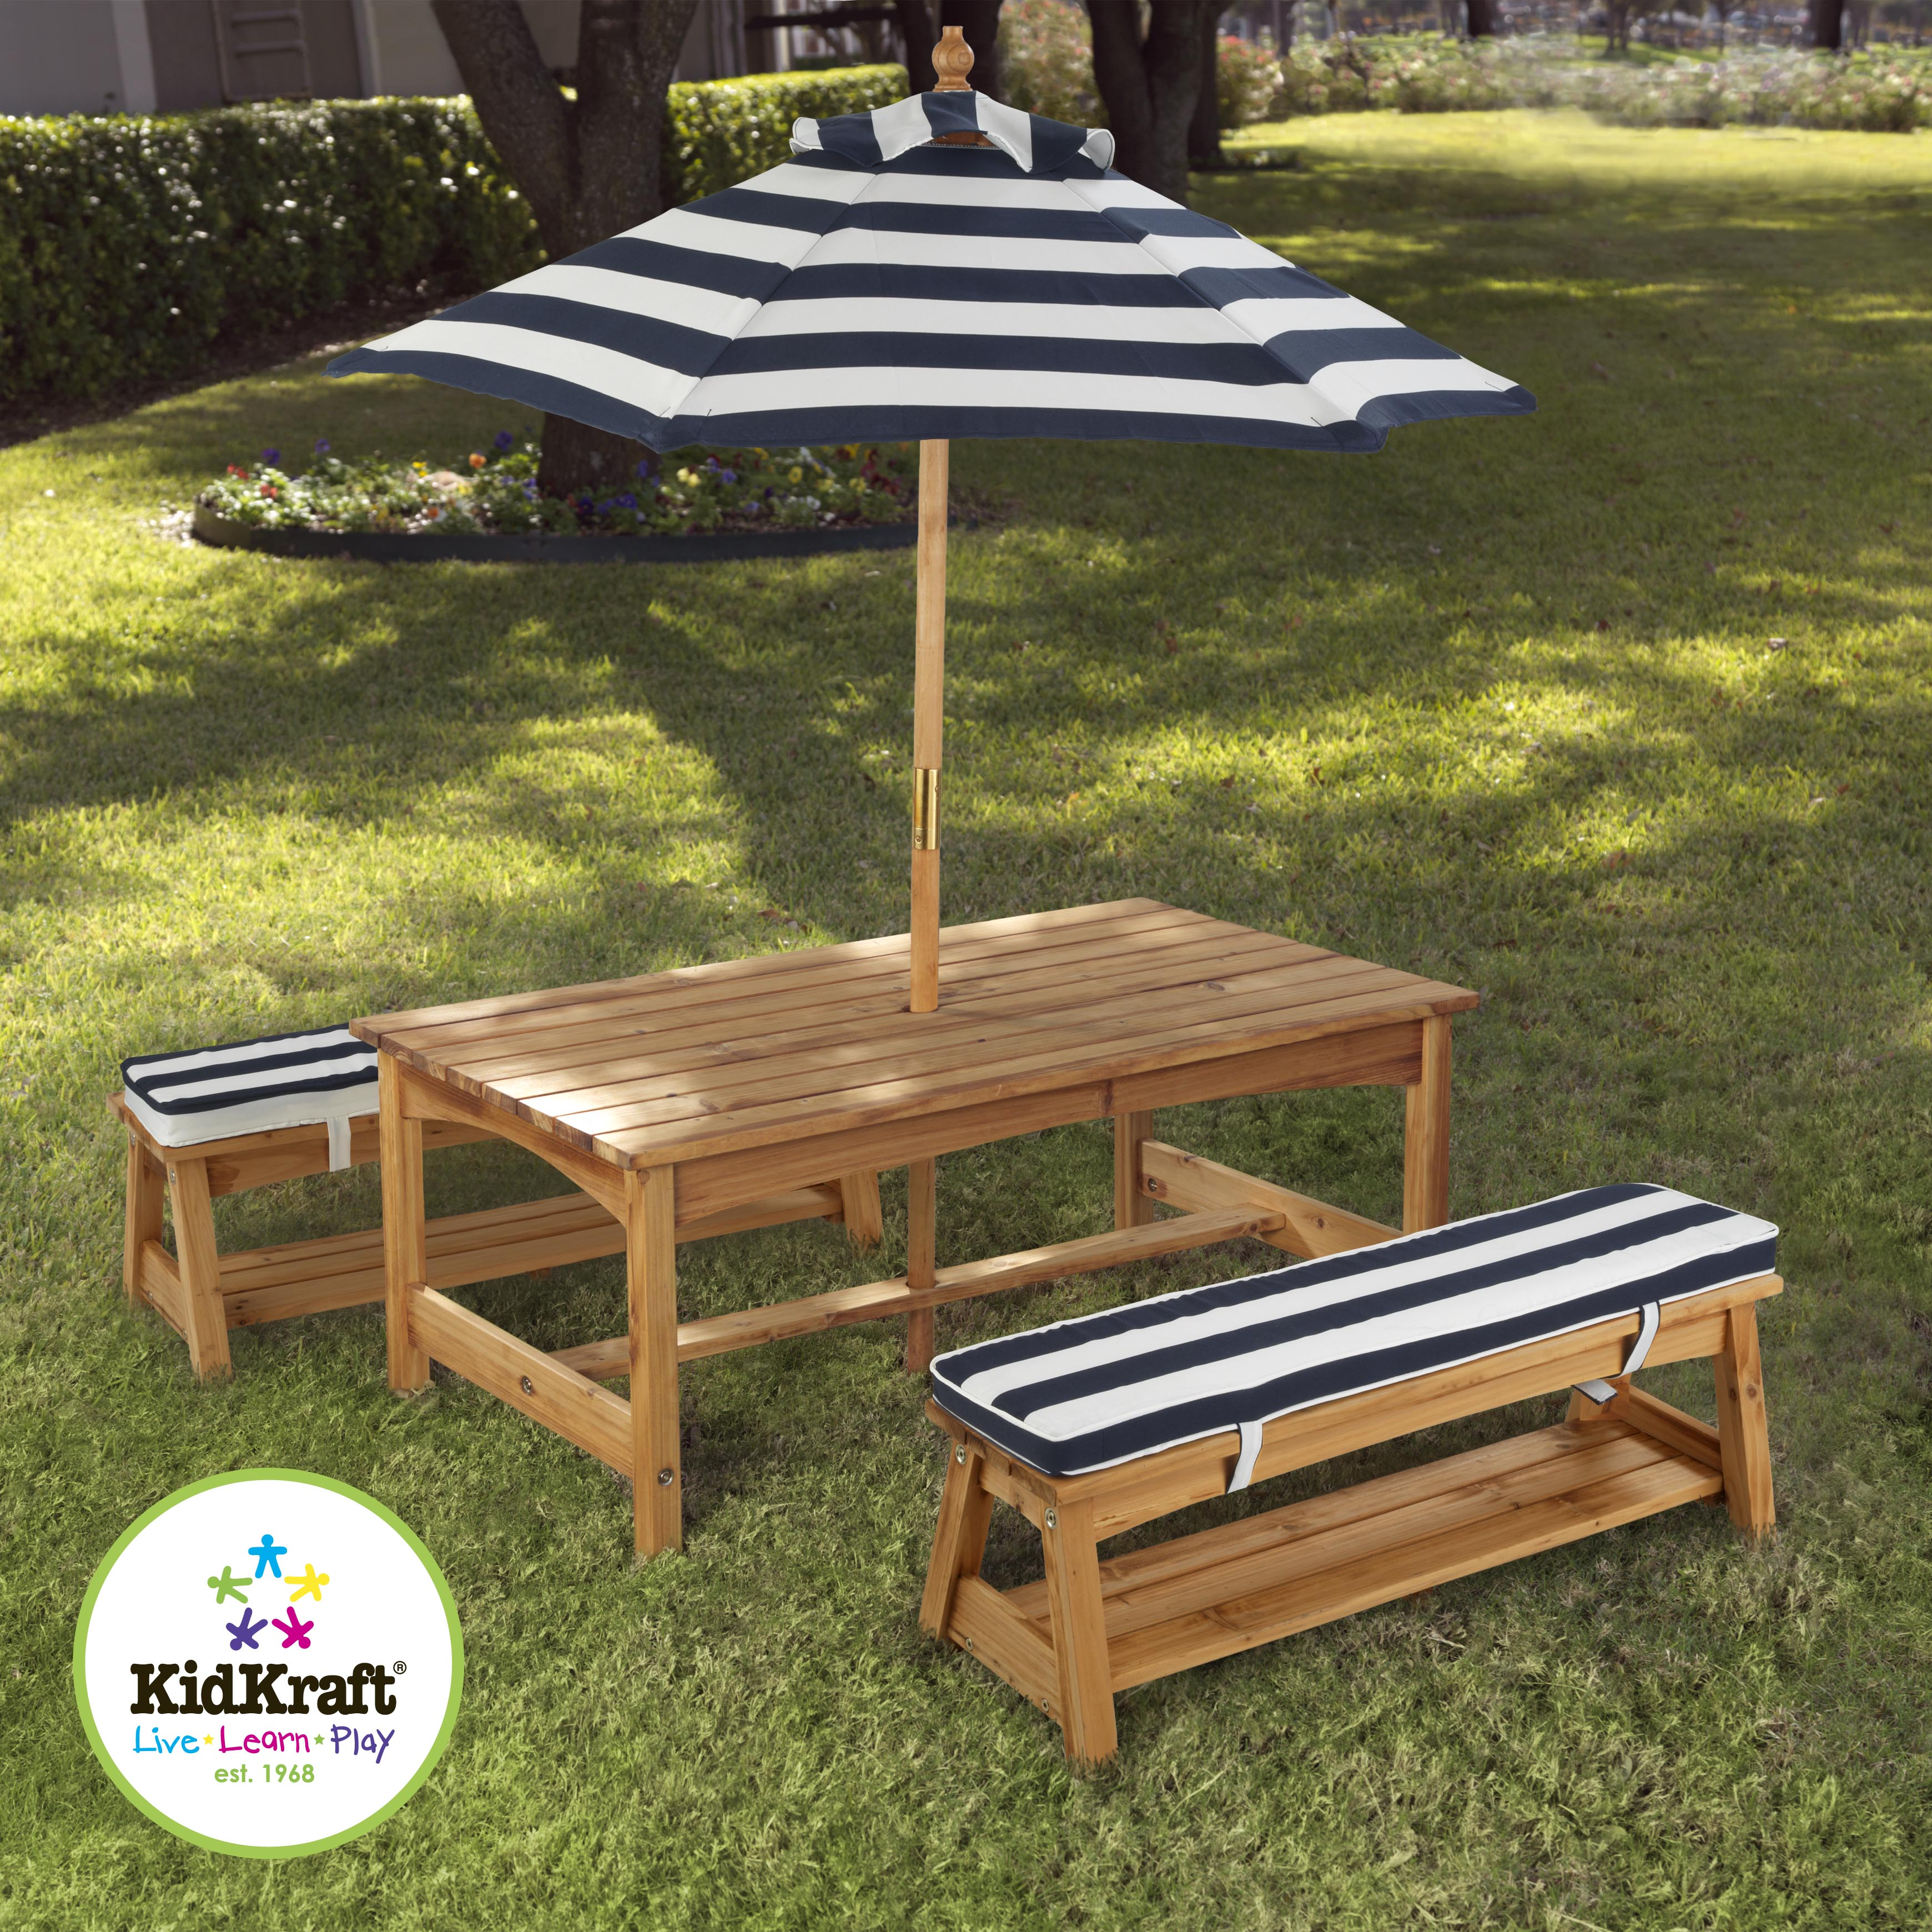 Kidkraft Outdoor Table & Bench set with Navy & White Cushion & Umbrella